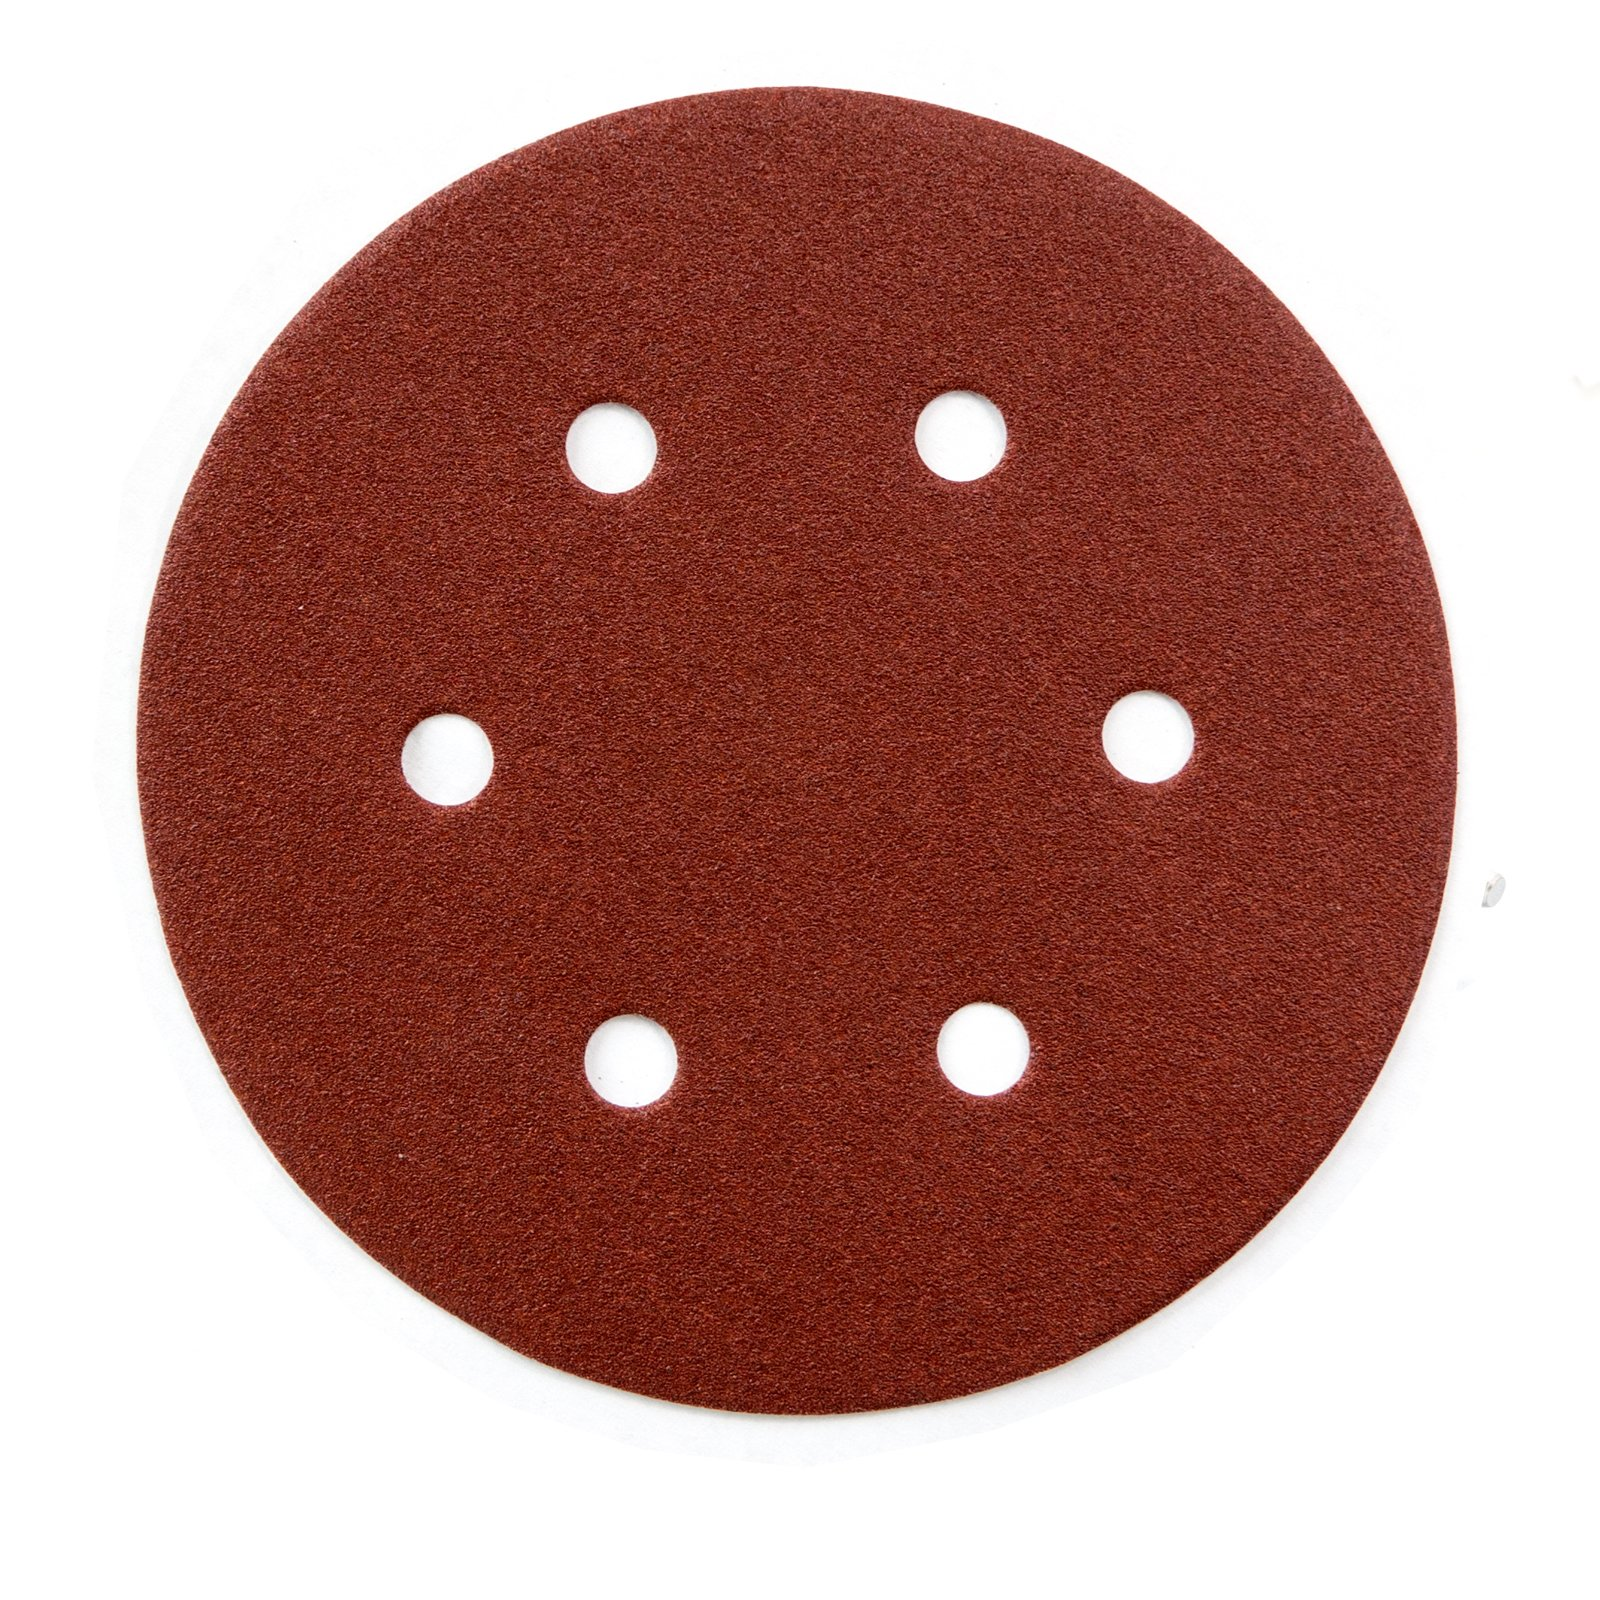 POWERTEC 45200 A/O Hook & Loop 6 Hole Disc, 6'', Assortment Grits 40, 80, 120, 220, 320, Red, 100 Pack